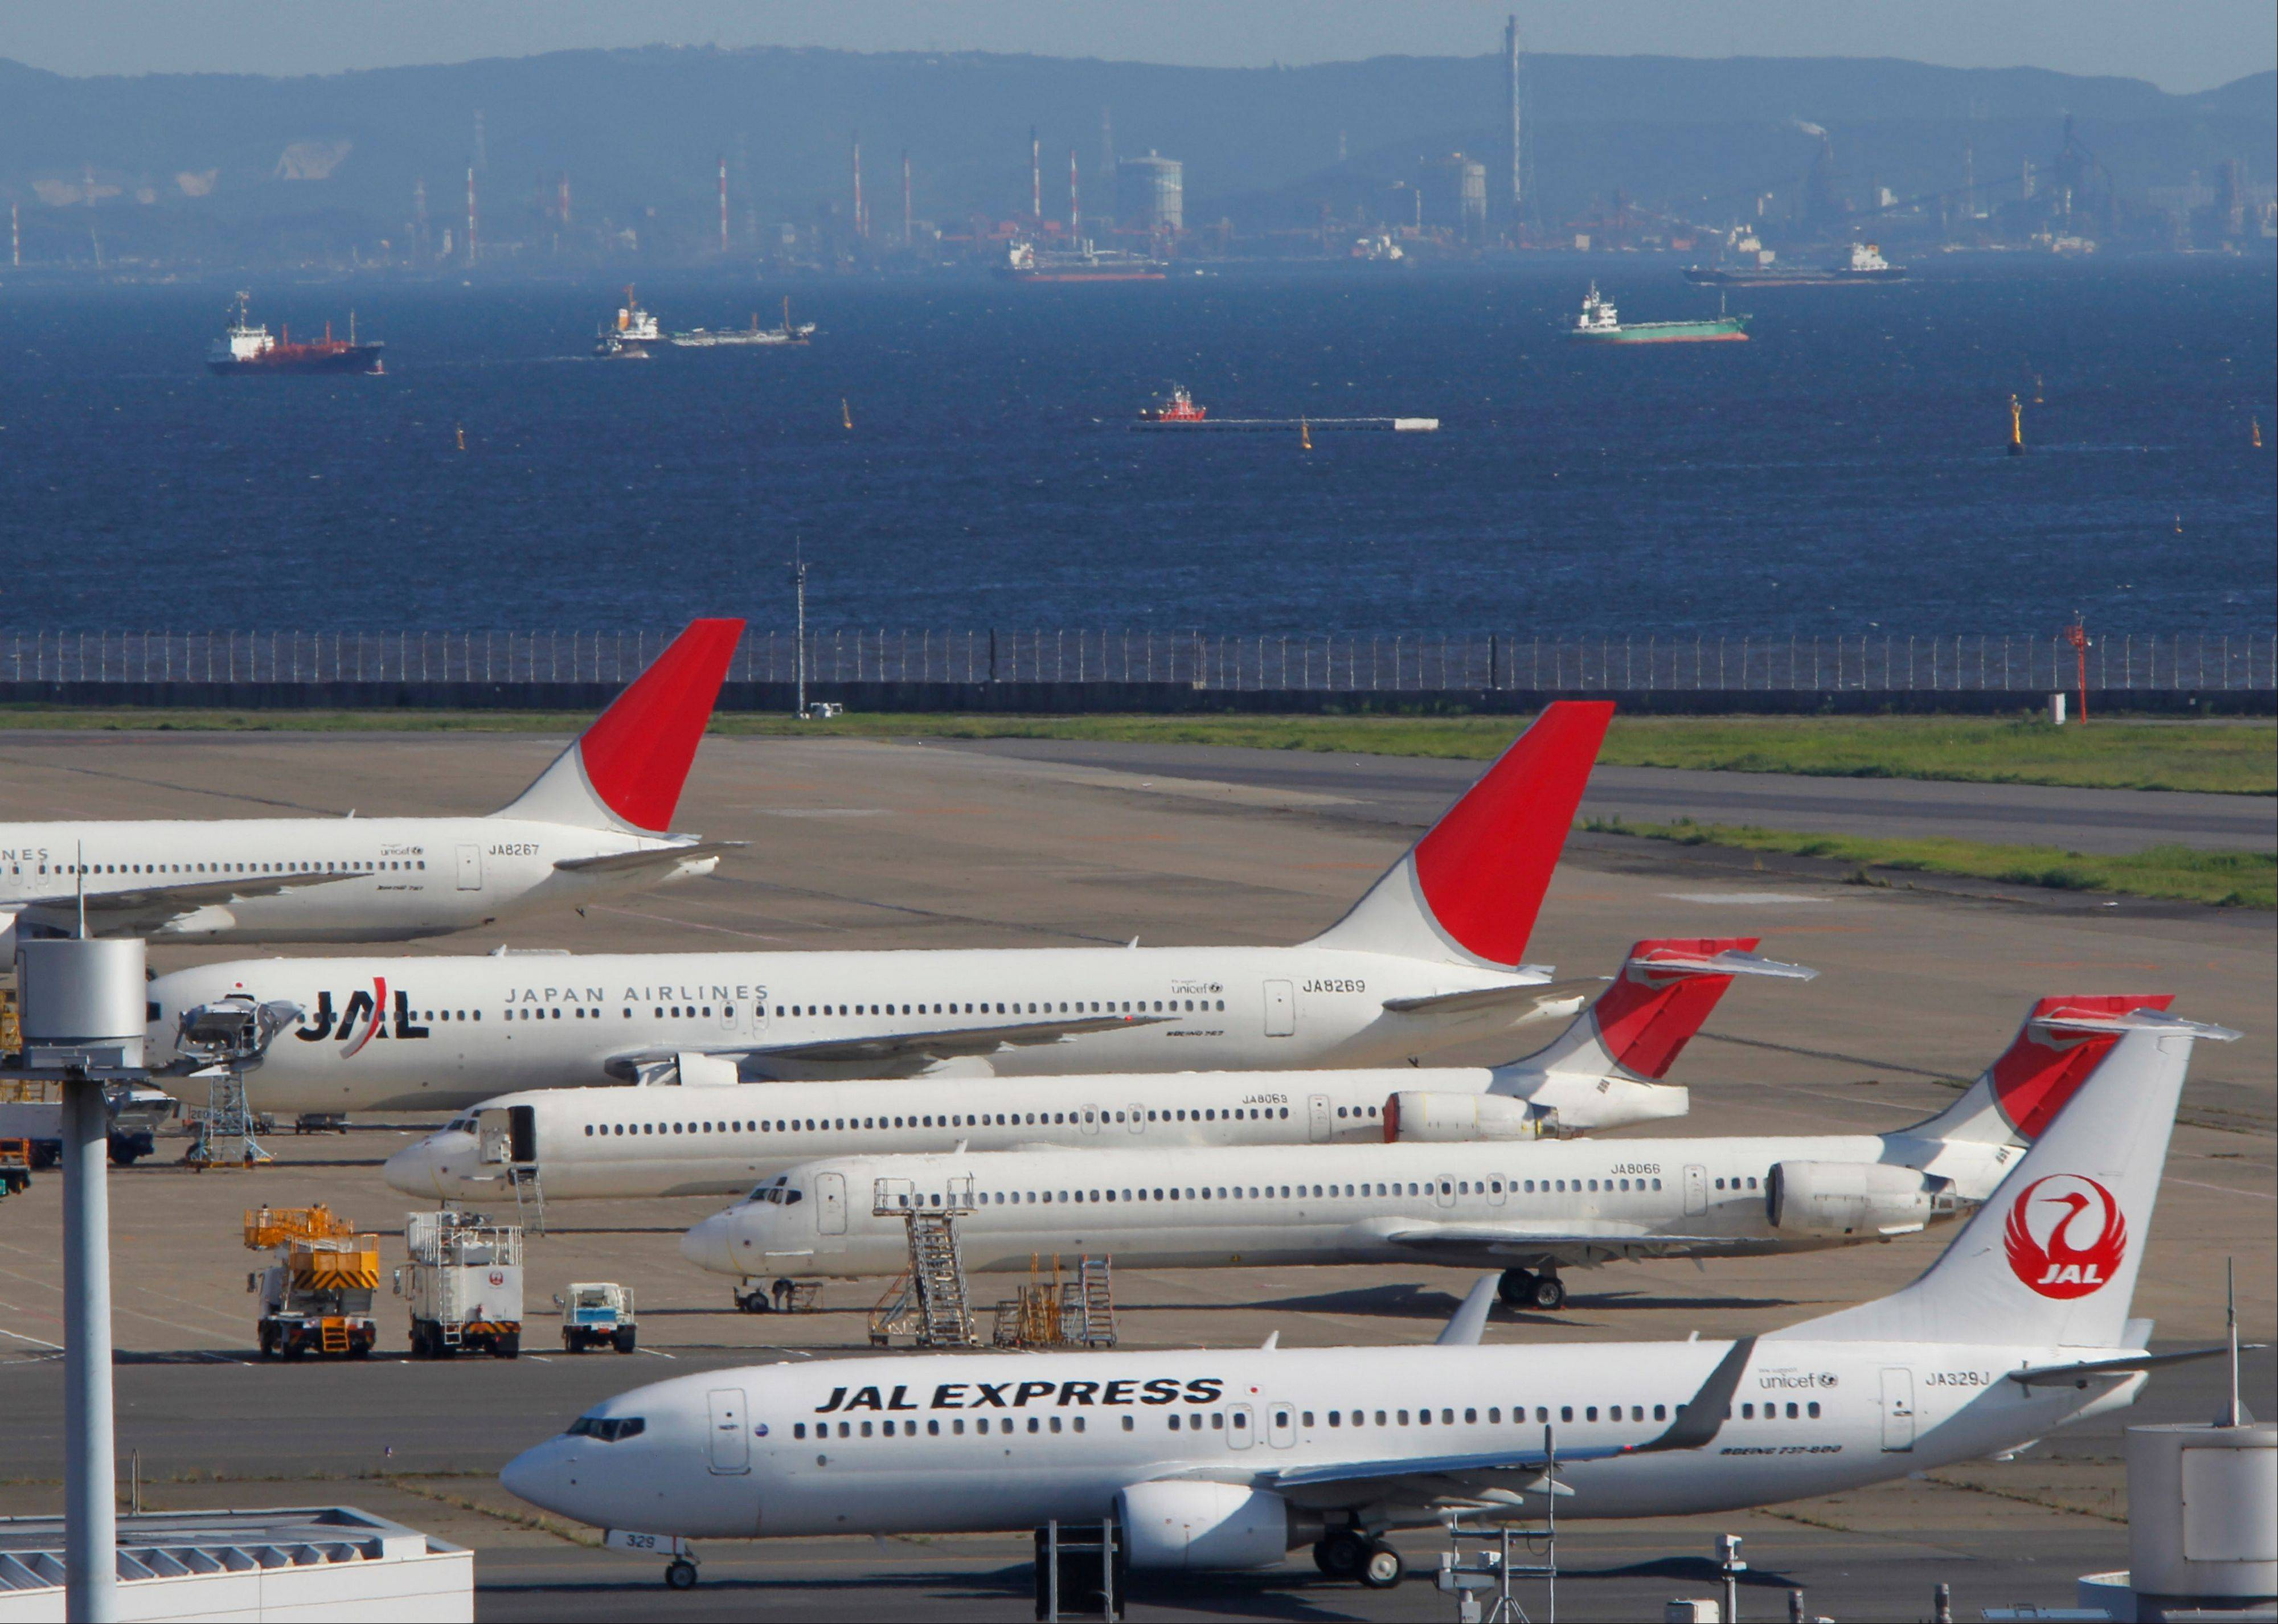 Japan Airlines passenger planes park on the tarmac of Tokyo's Haneda Airport in Tokyo Monday, Sept. 10, 2012. Japan Airlines Co. is raising 663 billion yen ($8.5 billion) in its initial public offering, pricing its shares at the top of its range at 3,790 yen ($48) ó the world's second biggest IPO this year after Facebook.